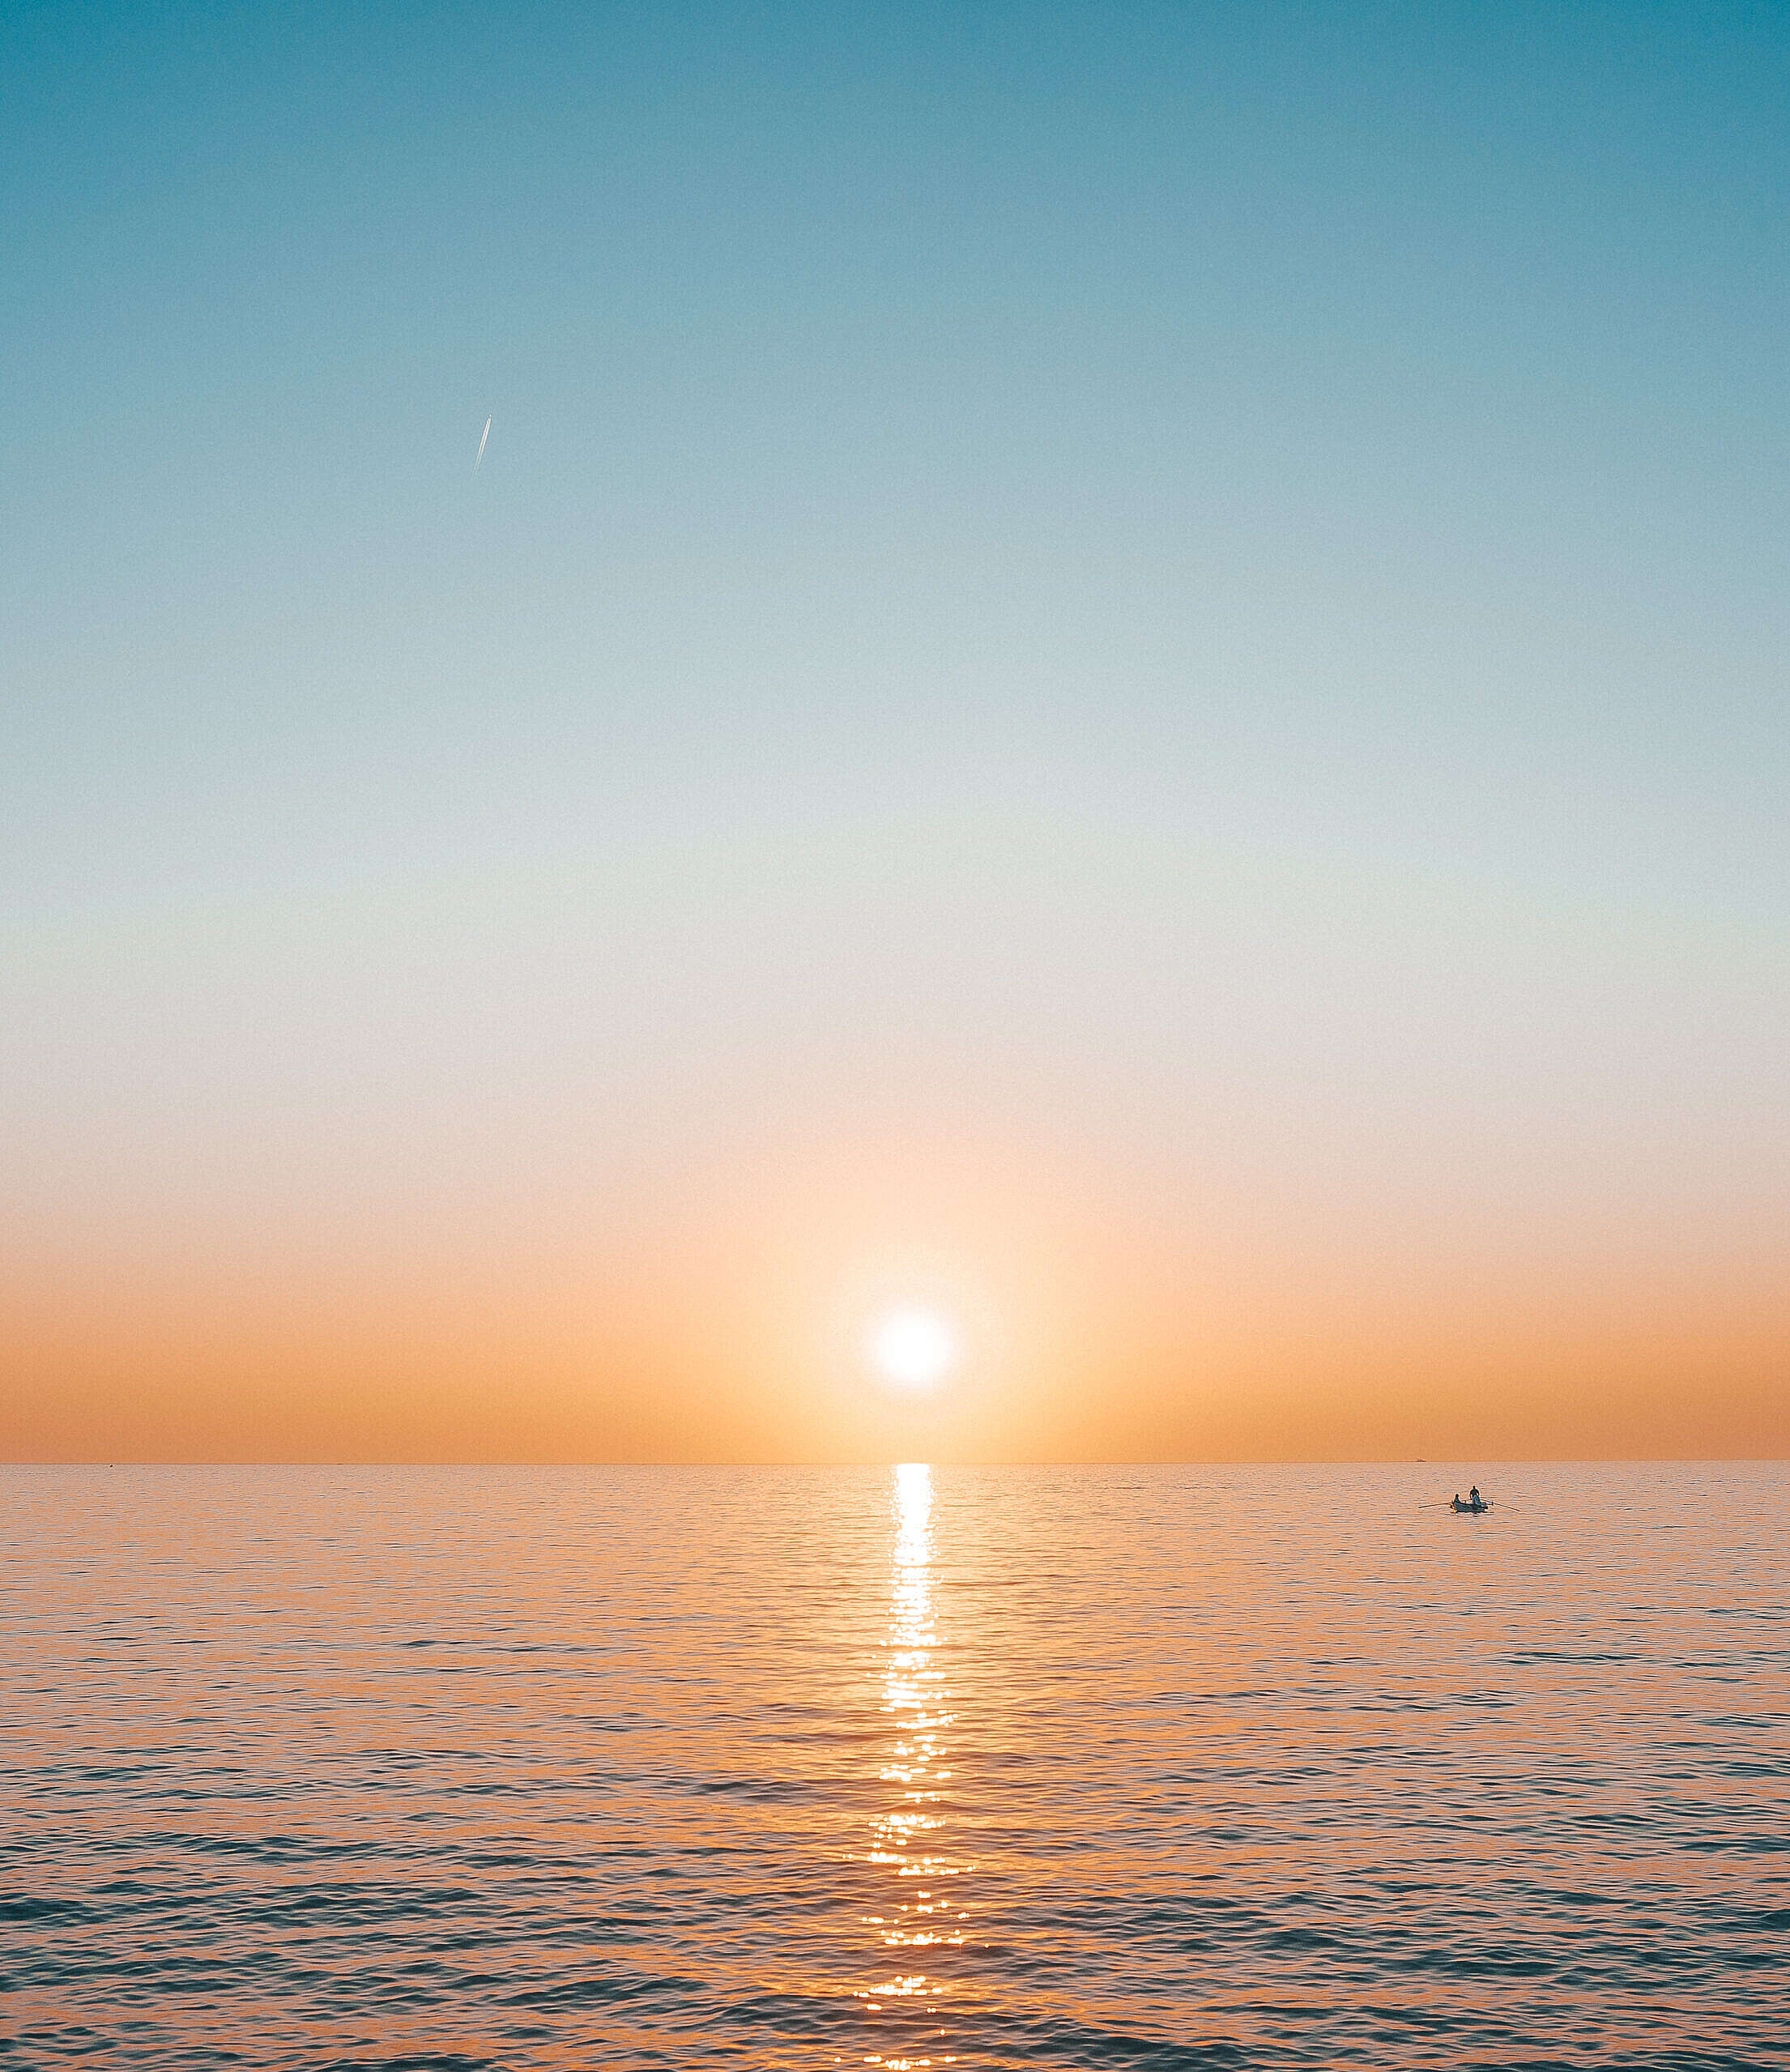 Sunset over the Sea with a Small Boat Free Stock Photo